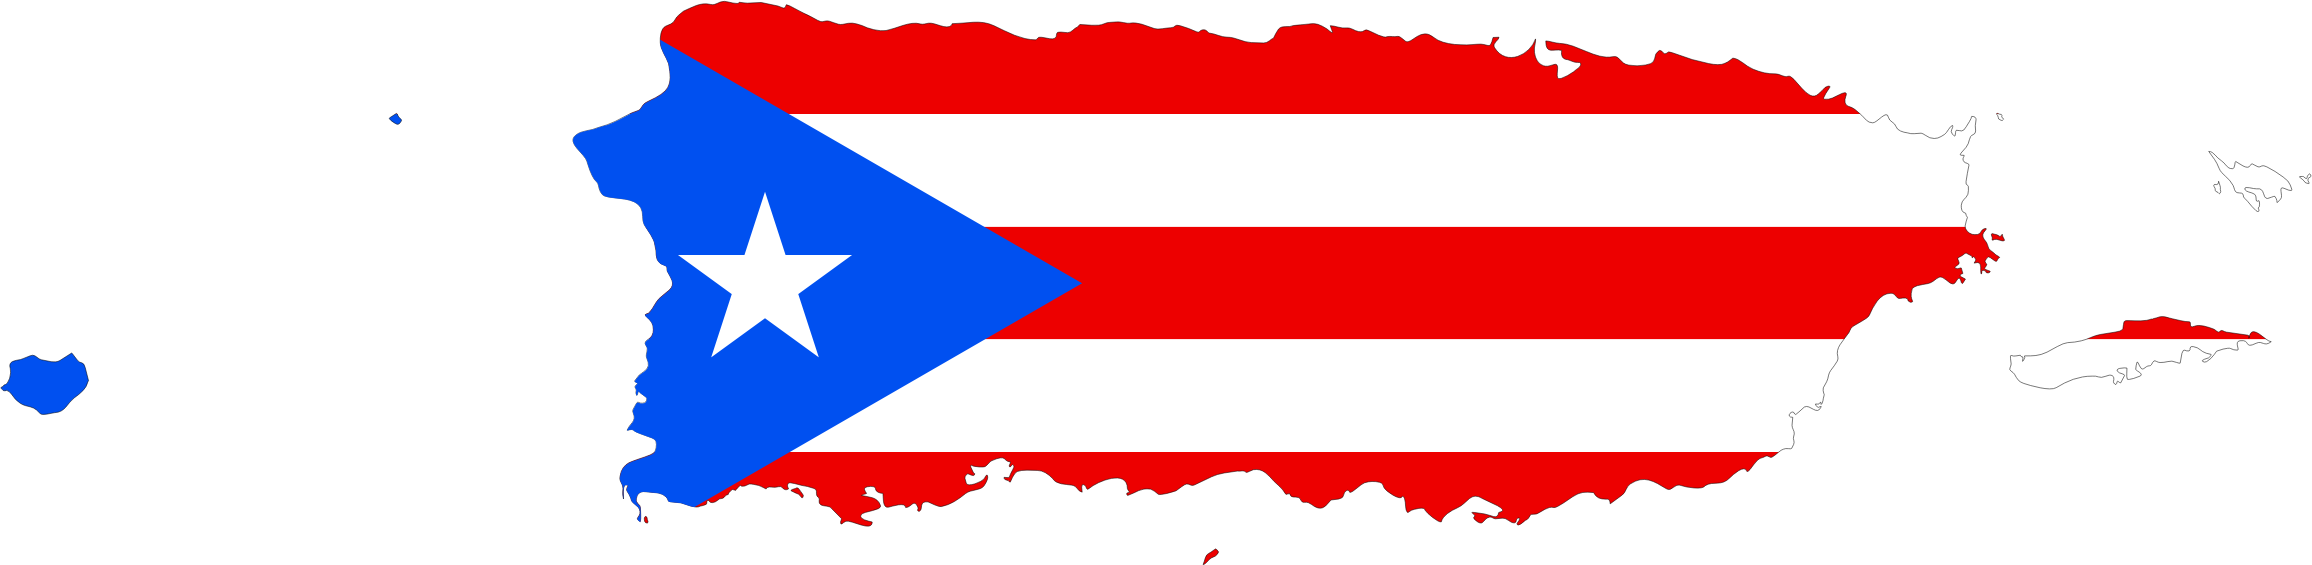 Puerto rico map png. Transparent images pluspng big